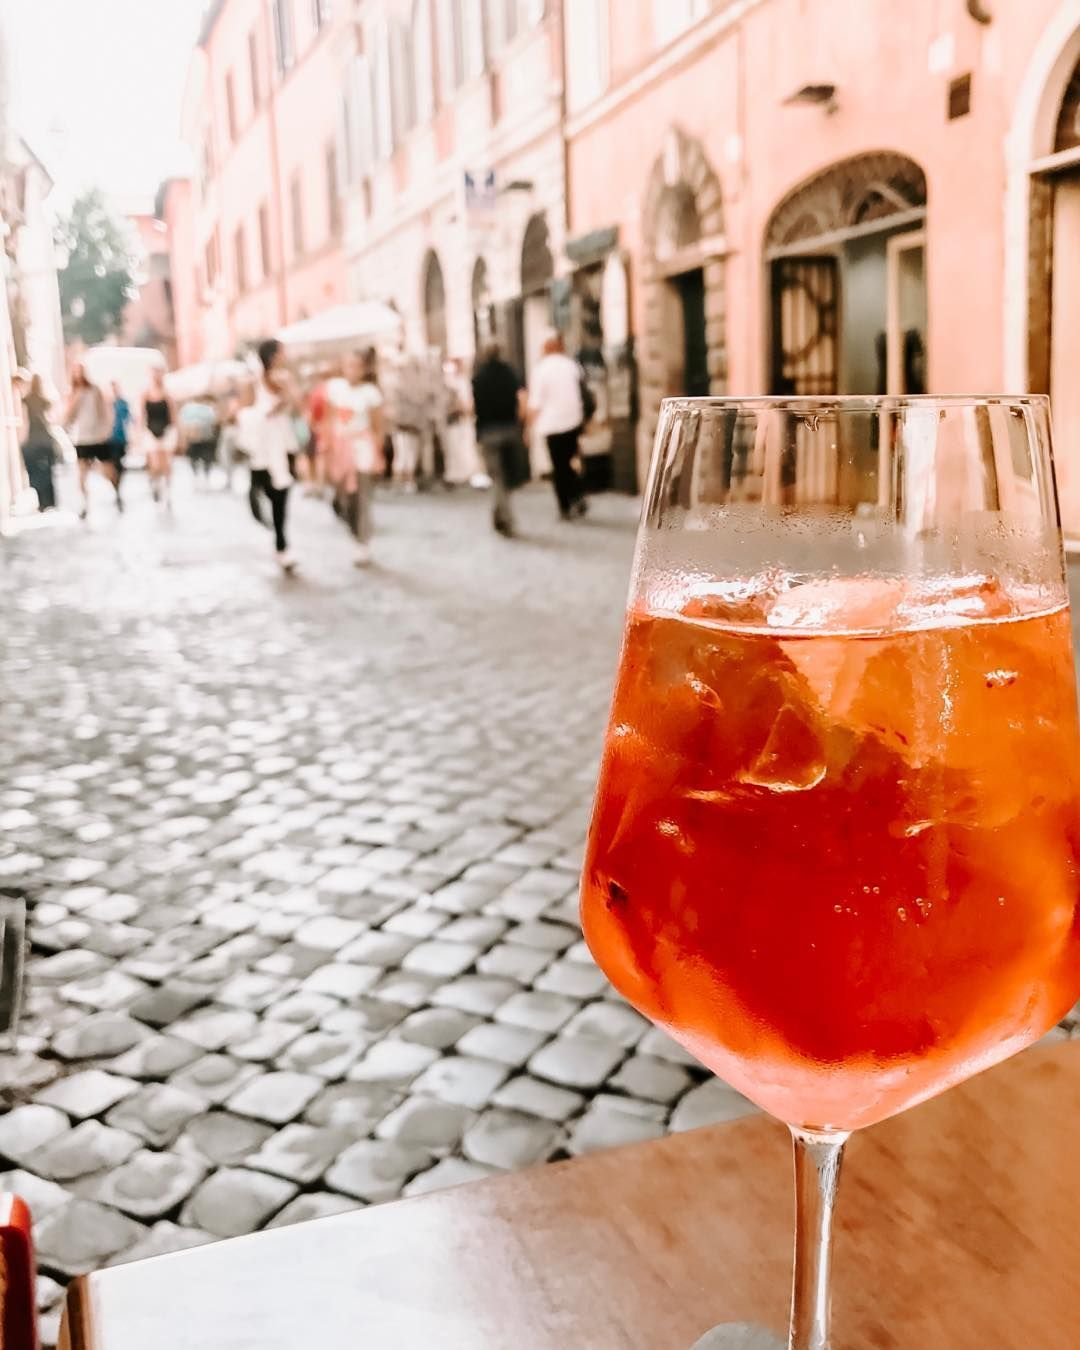 Who S Thirsty For Some Classic Aperol Spritz You Can Make Your Own With These Simple Steps Pour The Aperol Into The Glass First Over Ice We Like To Serve Ou